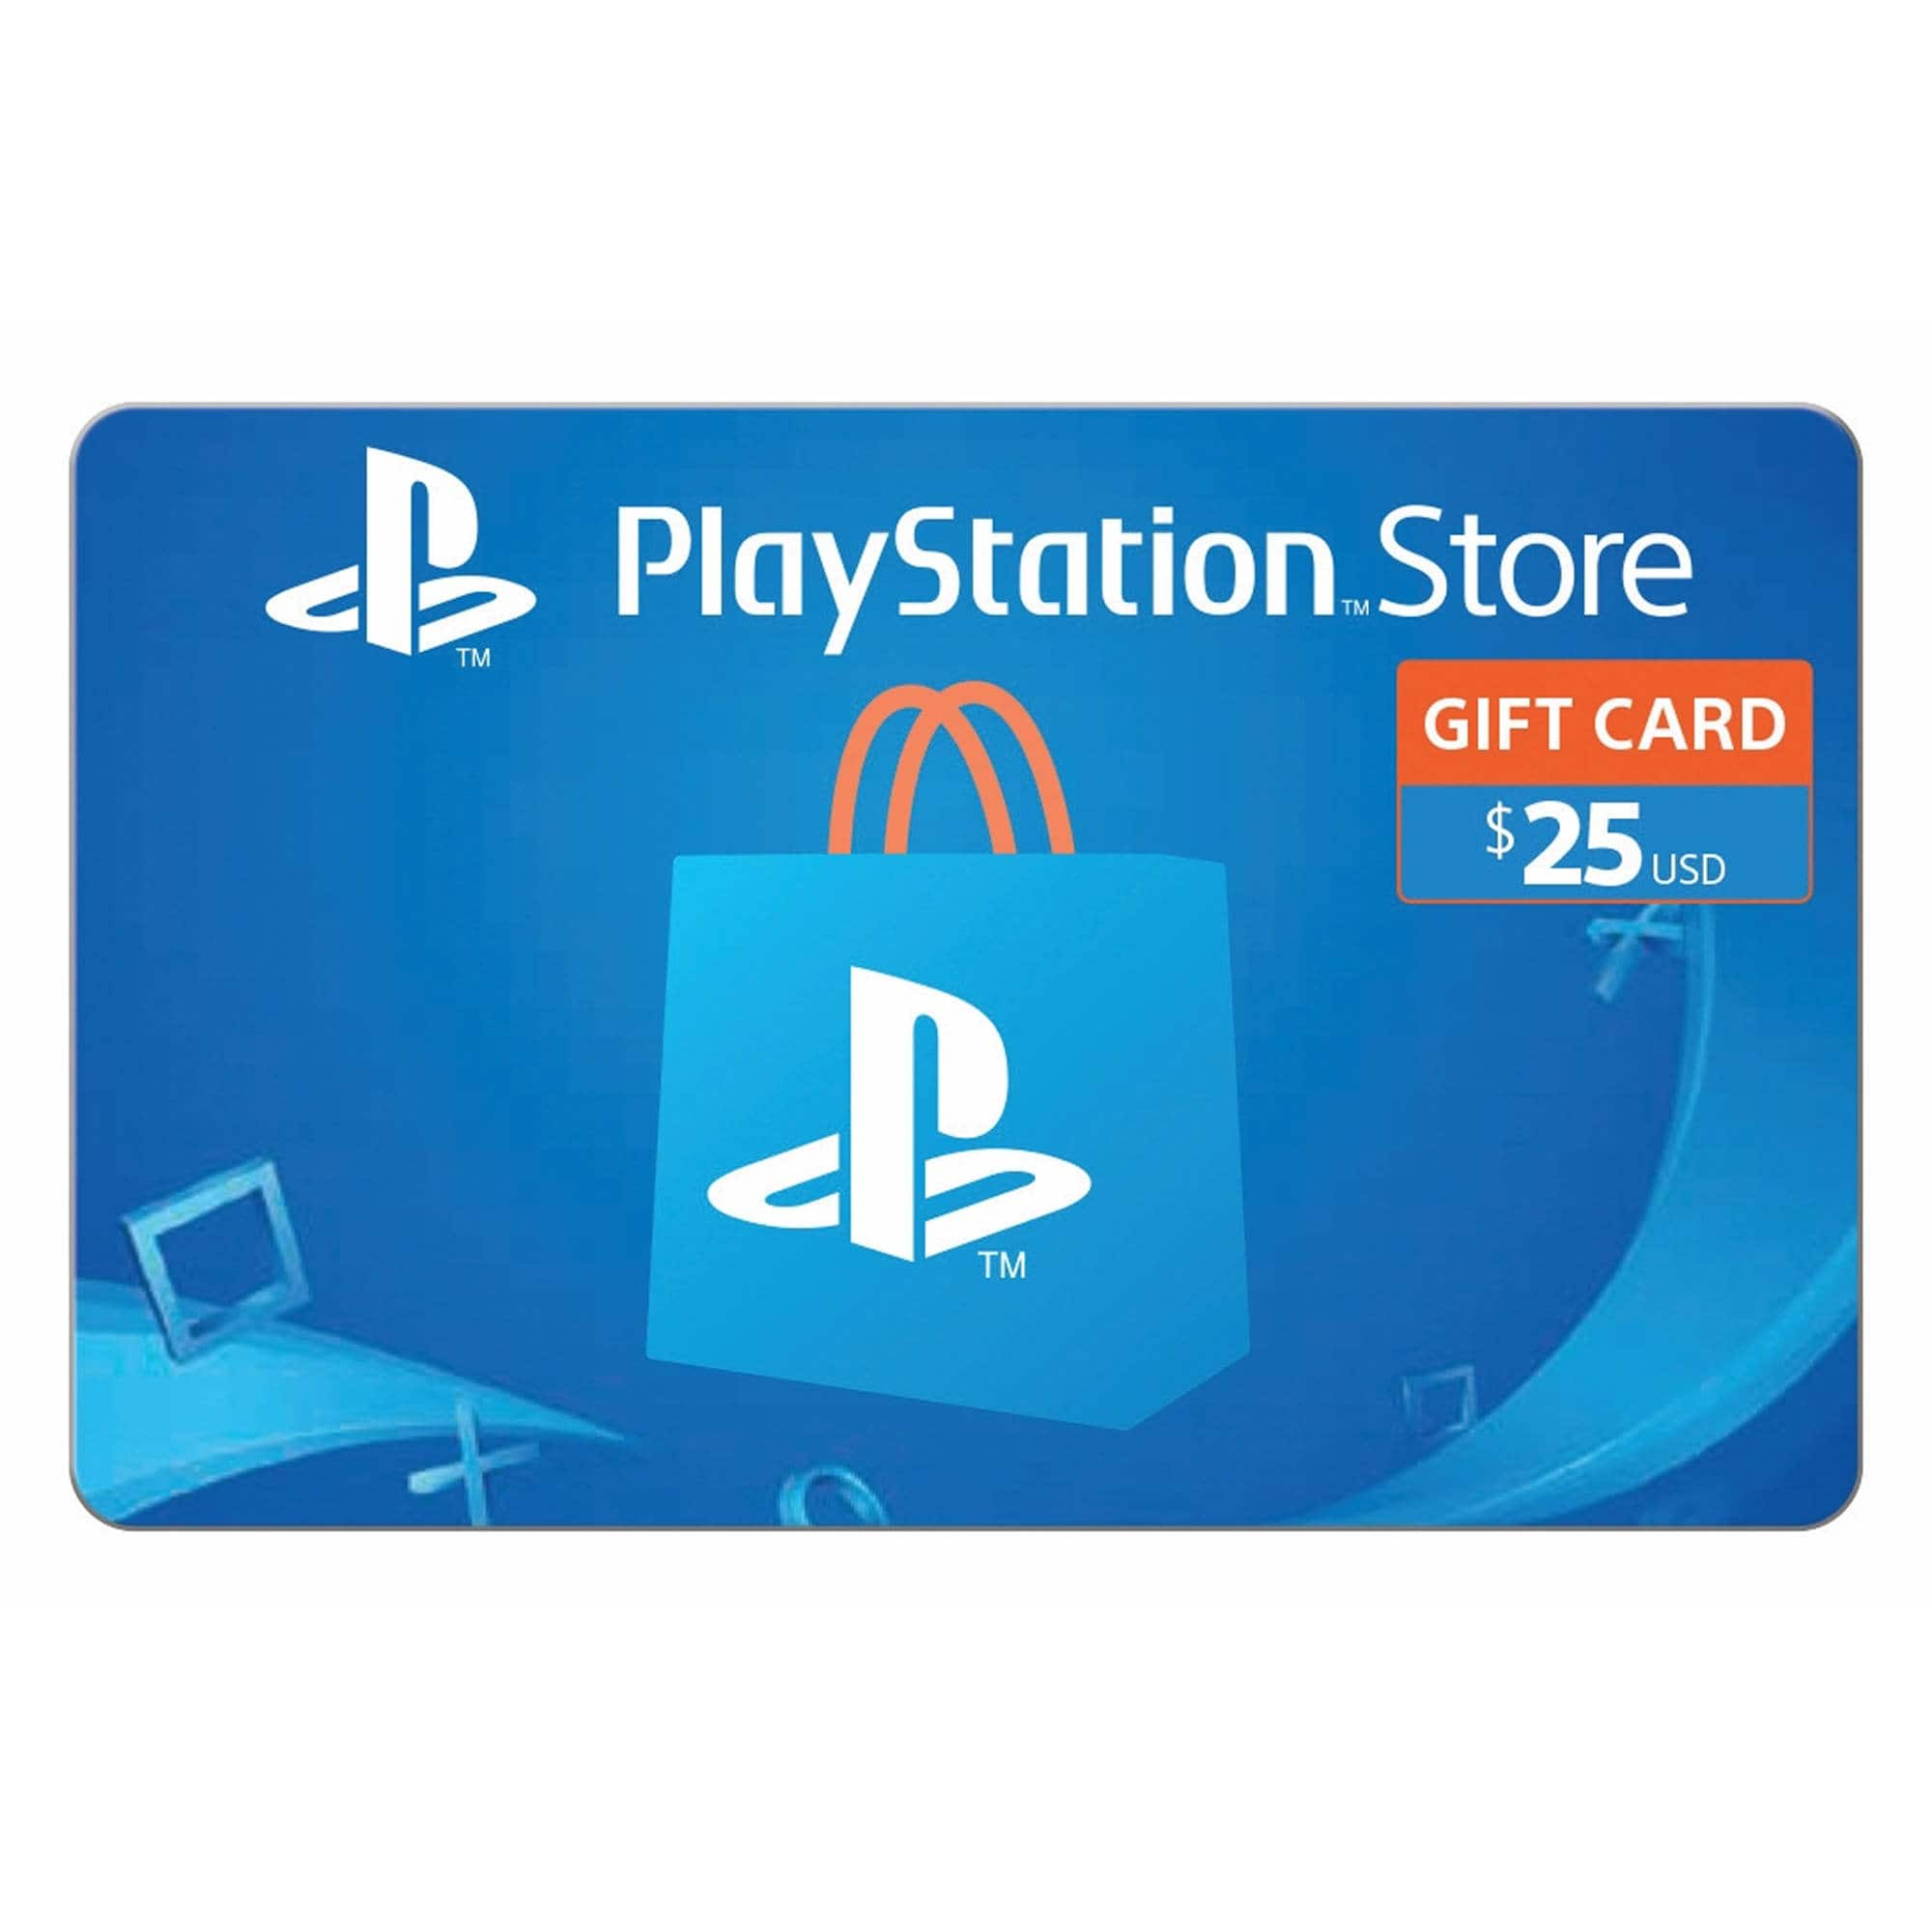 $25 PlayStation Store Gift Card for $19.99